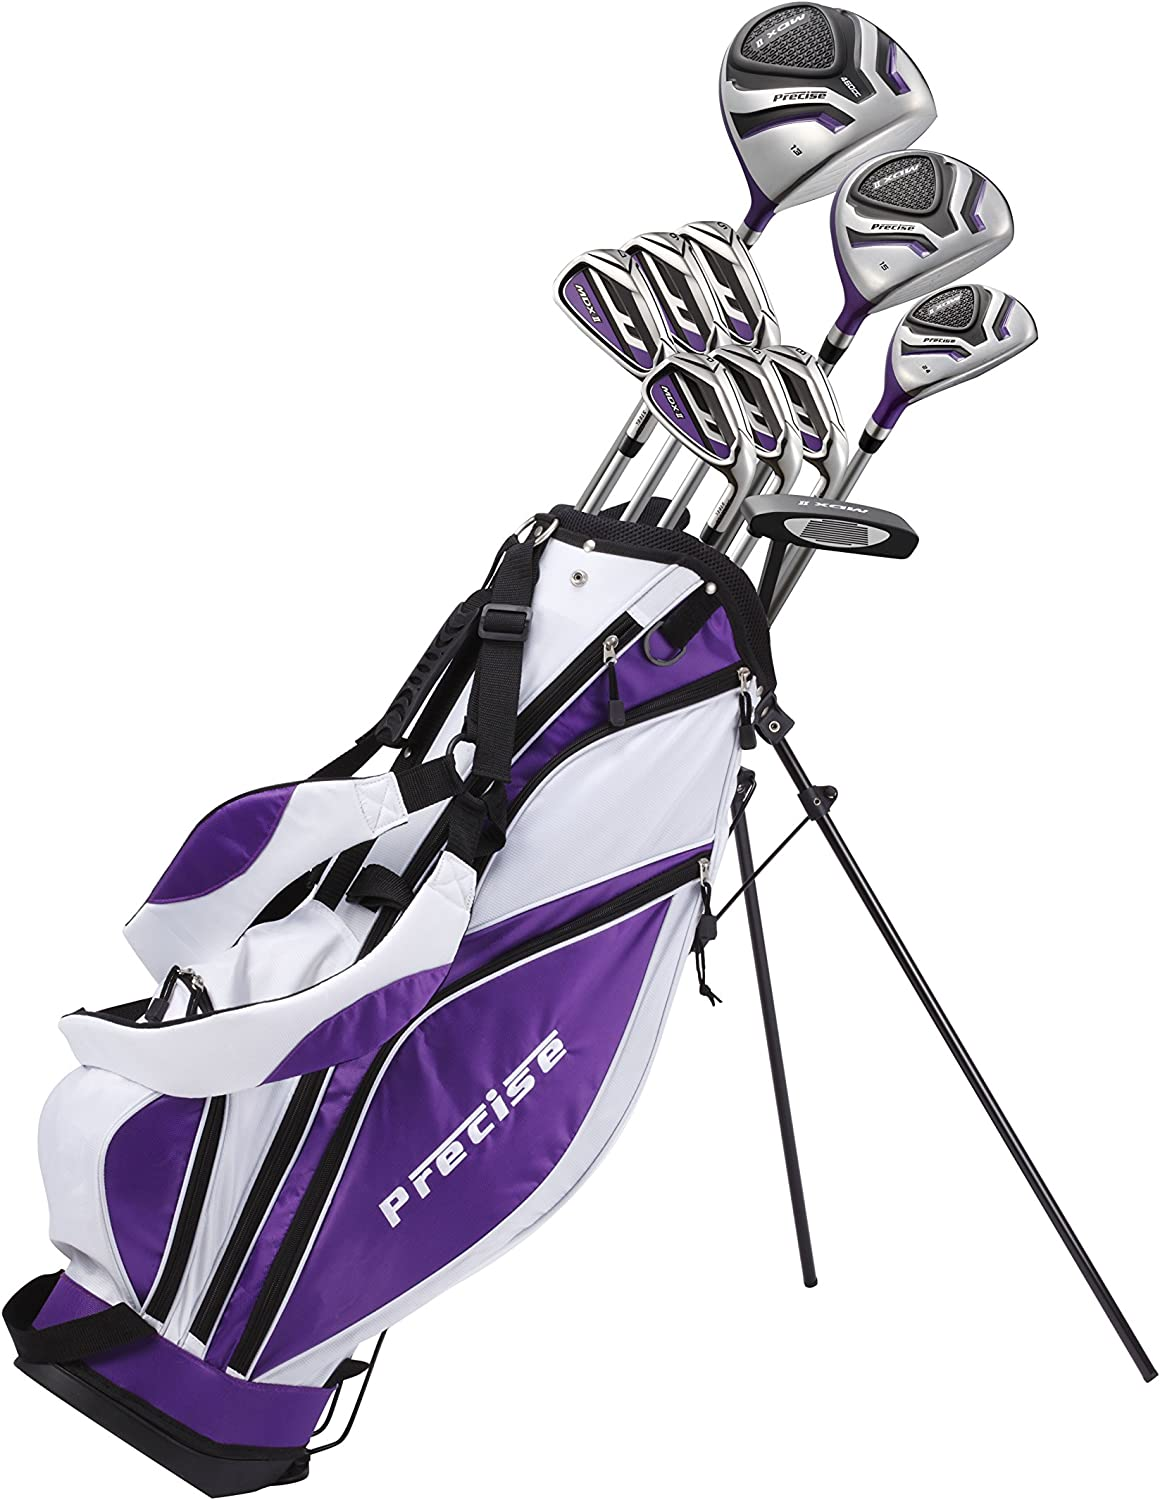 Precise Premium Ladies Womens Complete Golf Clubs Set Includes Driver, Fairway, Hybrid, S.S. 5-PW Irons, Putter, Stand Bag, 3 H/C's